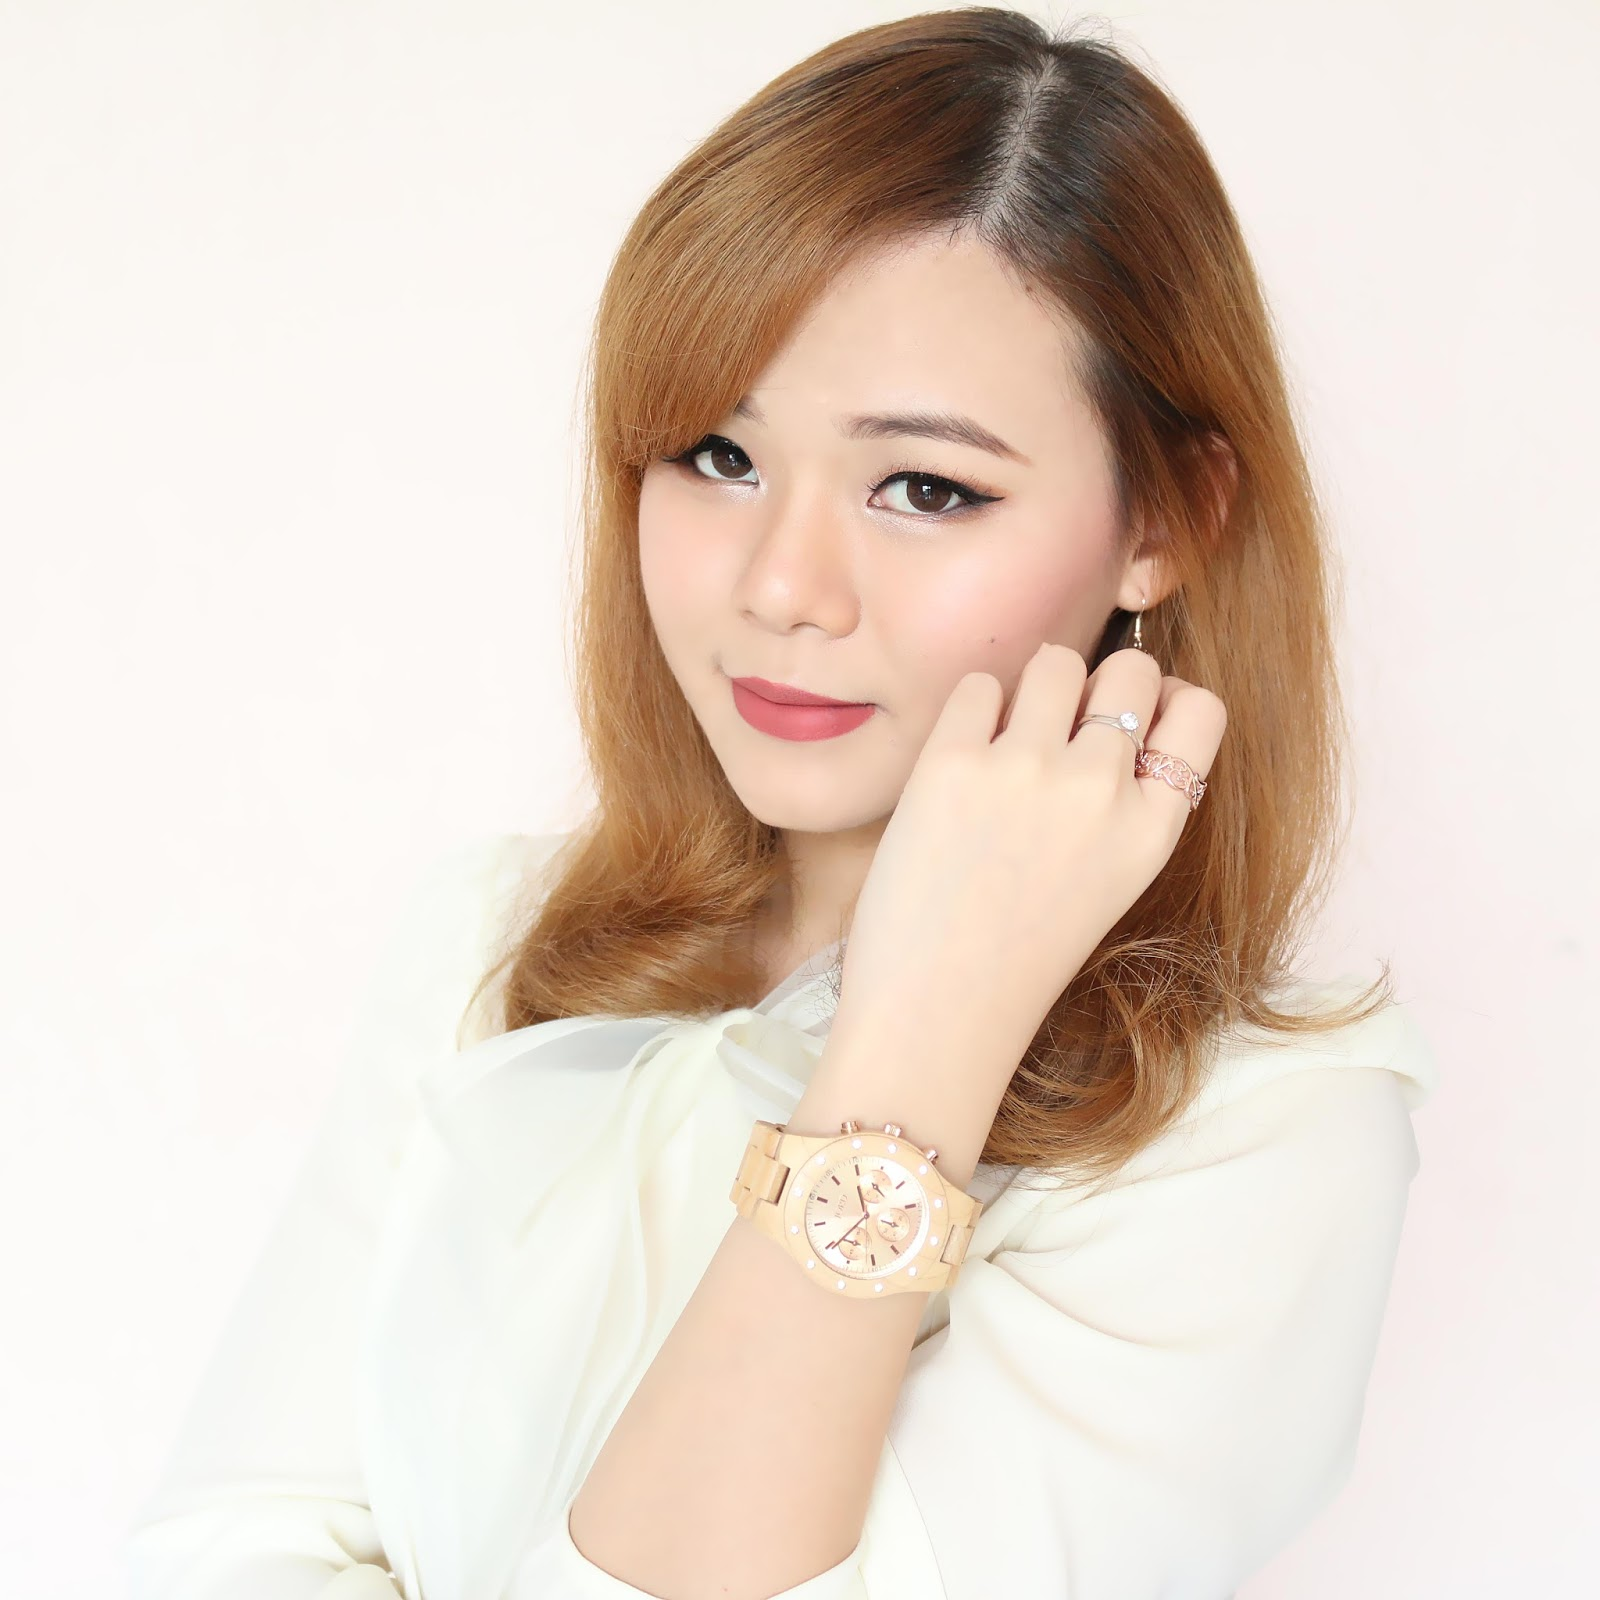 jord, jord watch, jord watches, wood watches, wood watch, jord wood watch, watch, fashion item, style, rose gold accessories, time pieces, unique watch, jean milka, jeanmilka, indonesian blogger, blogger indonesia, beauty